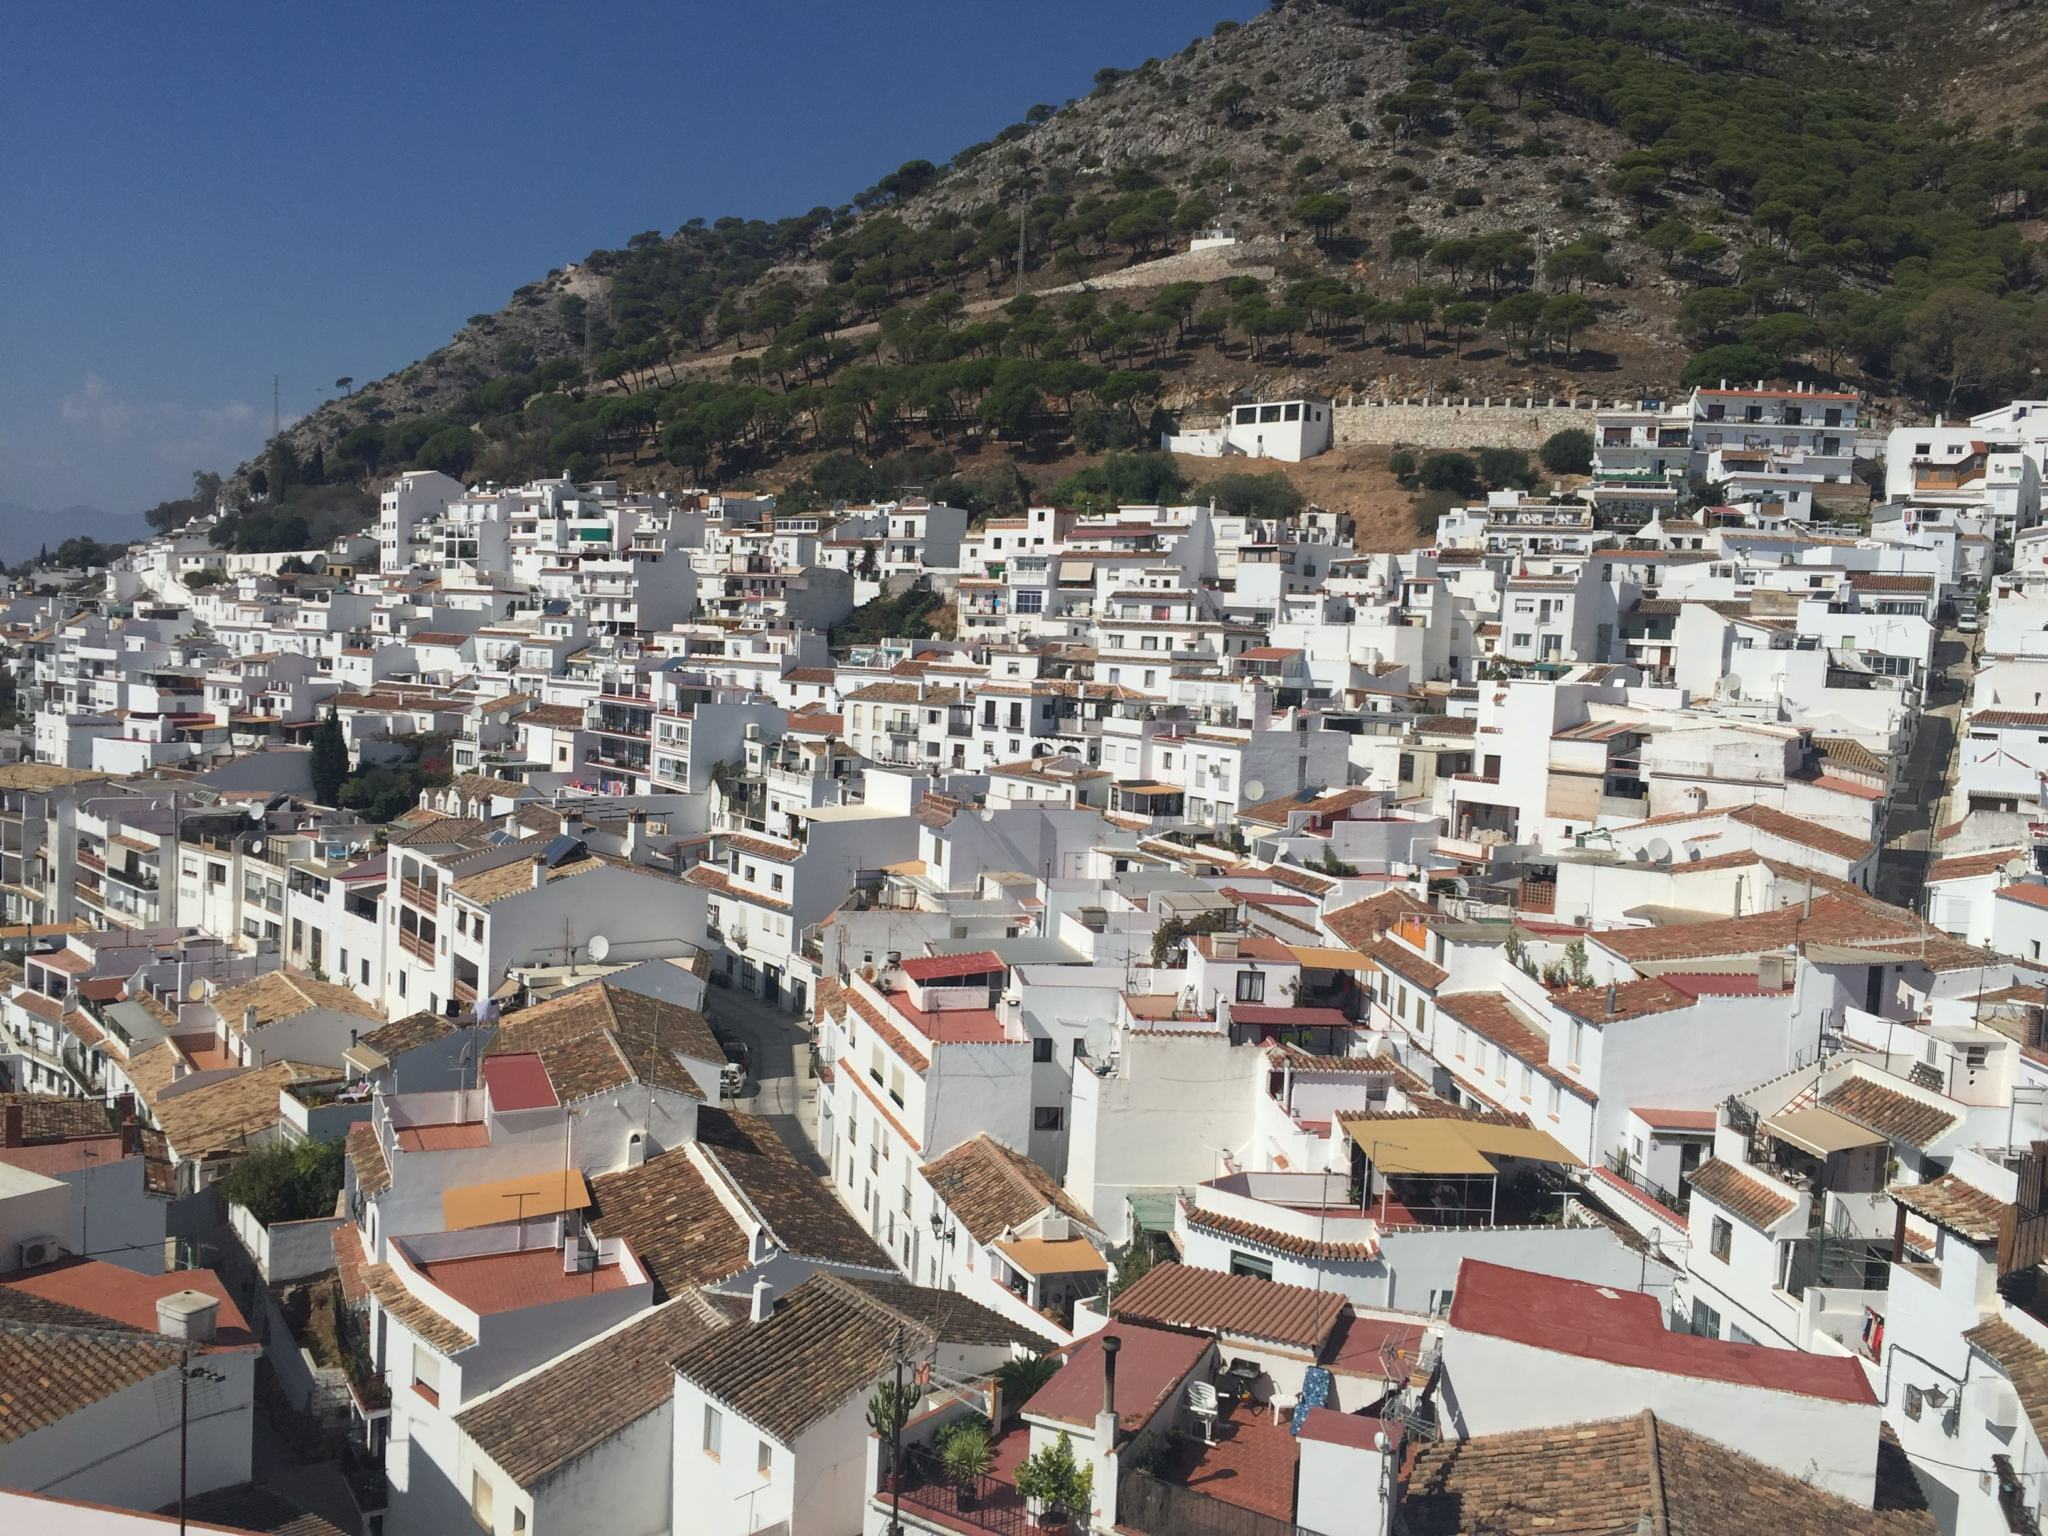 Things to do in Mijas Pueblo